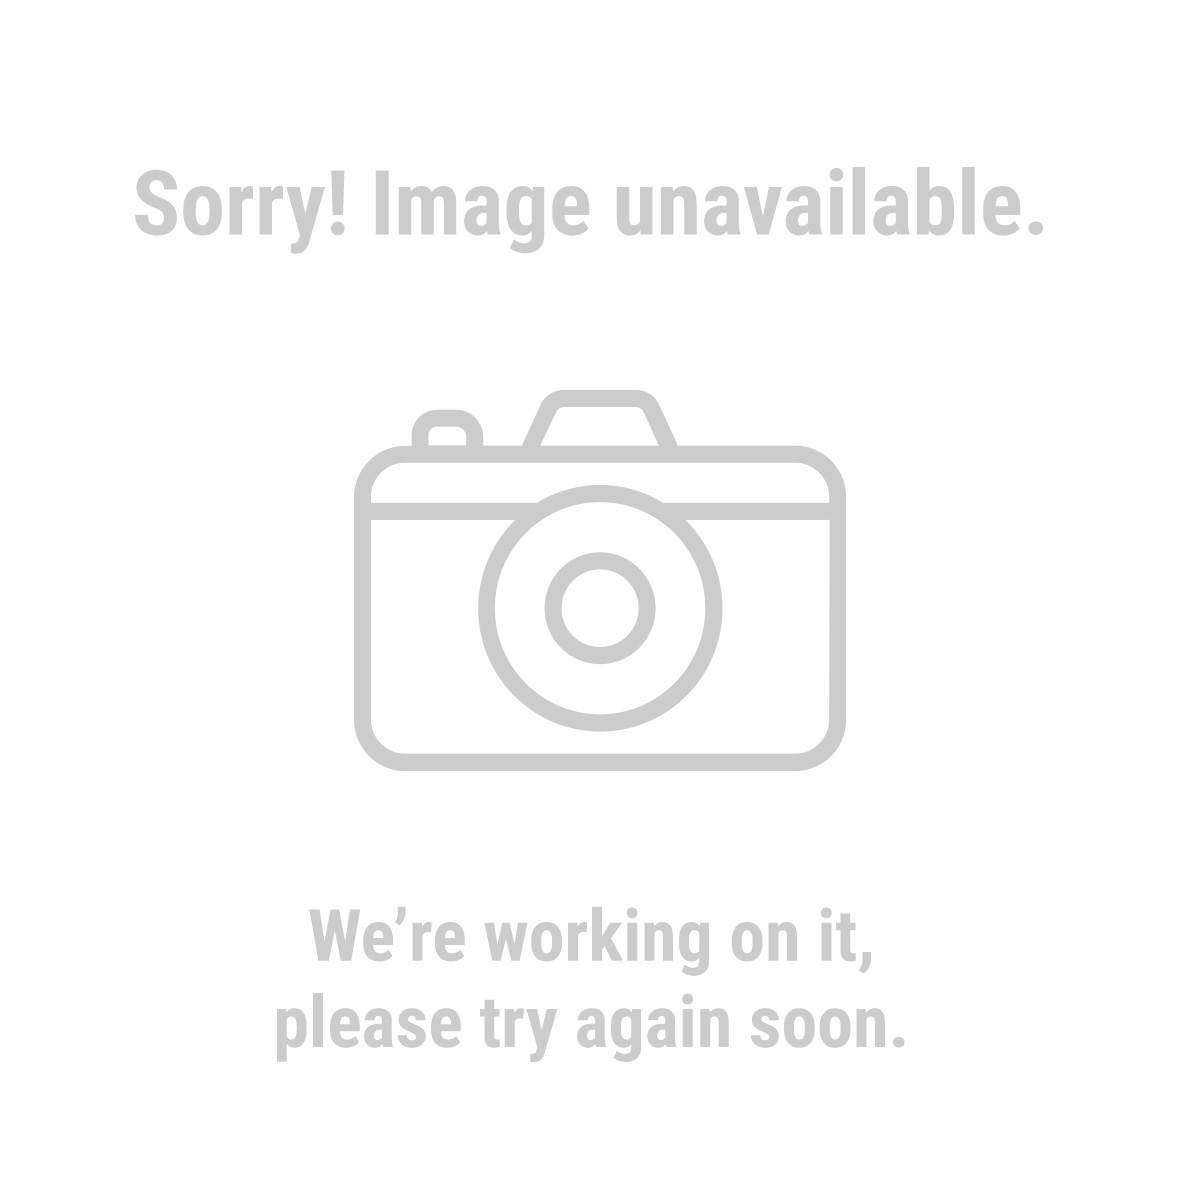 Central Pneumatic 95630 1/5 HP, 58 PSI Compressor and Airbrush Kit